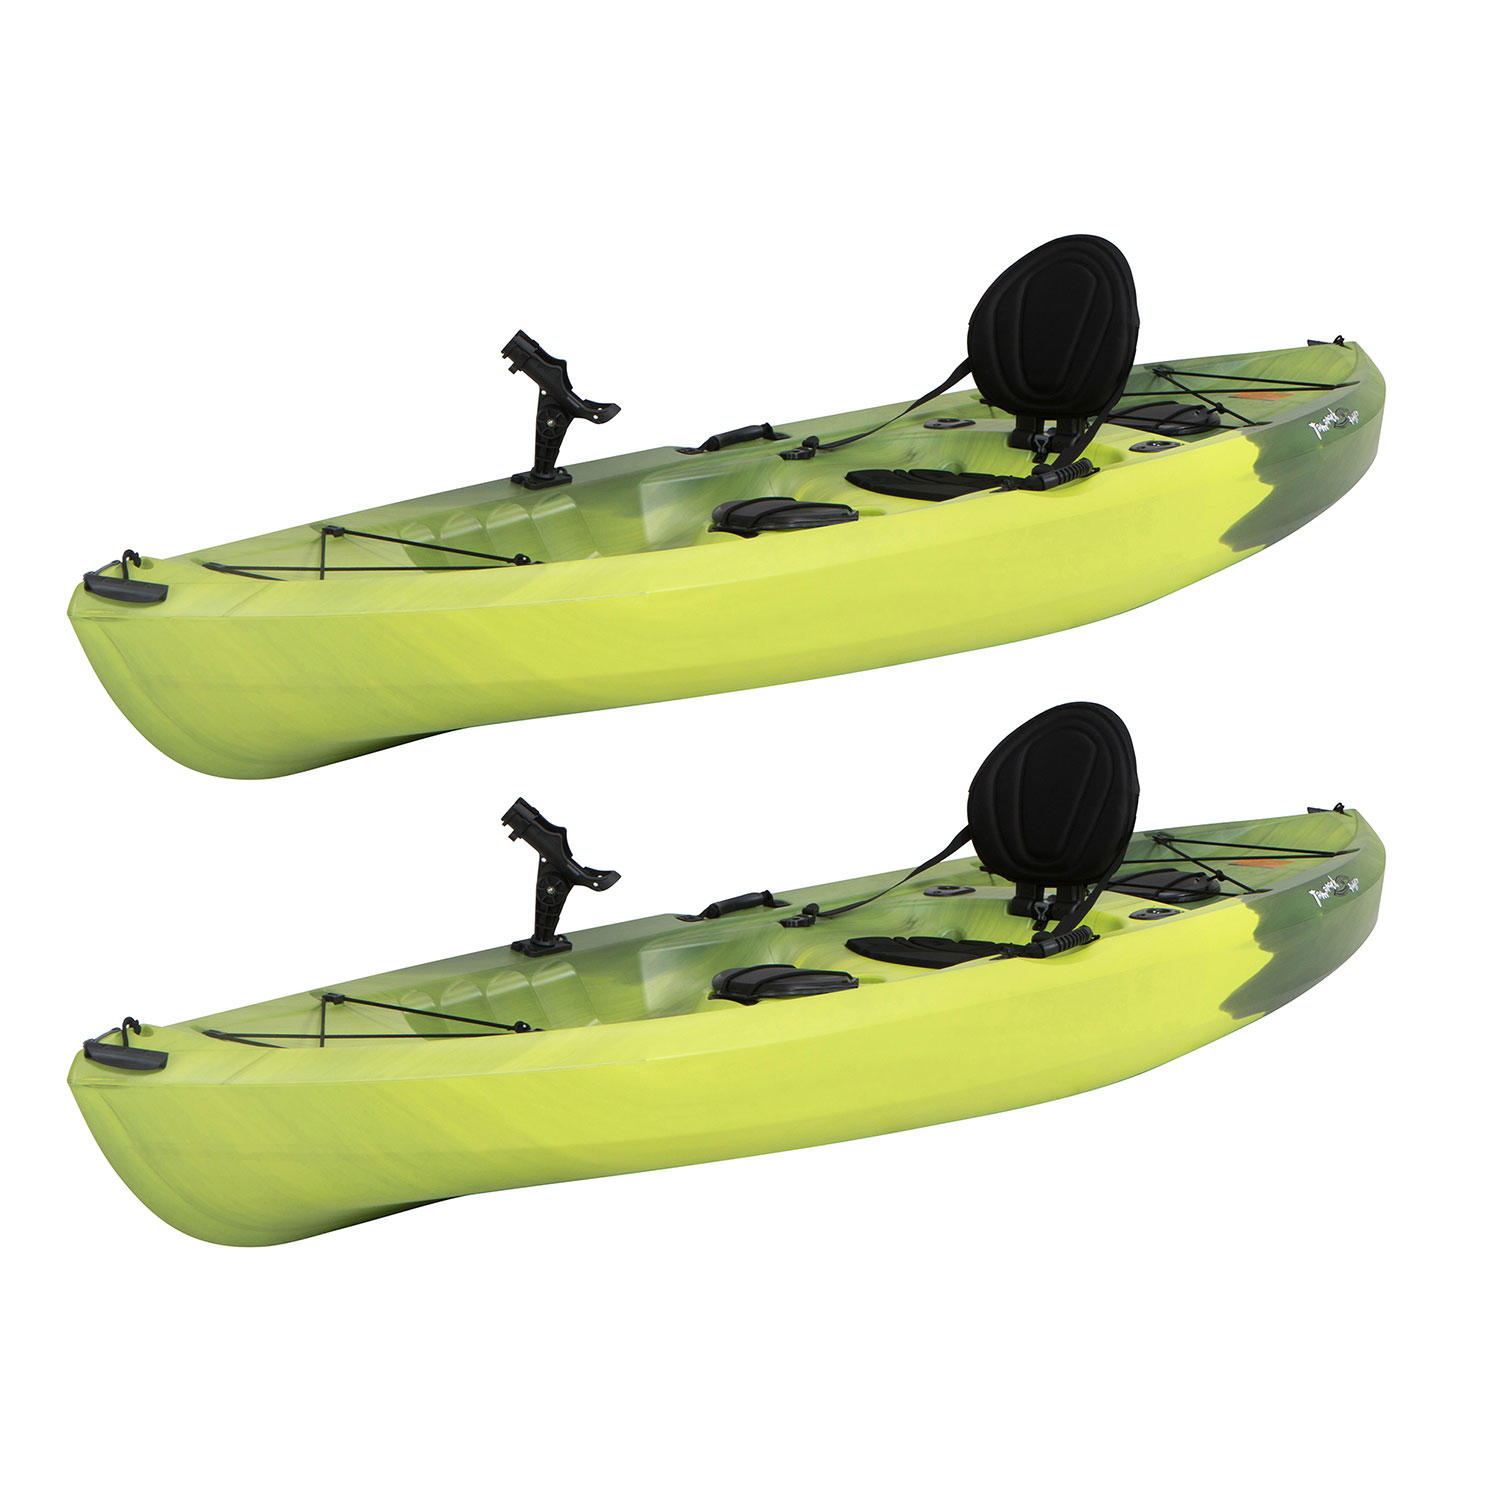 599 00 Emotion Stealth Pro Angler Kayak Dealepic